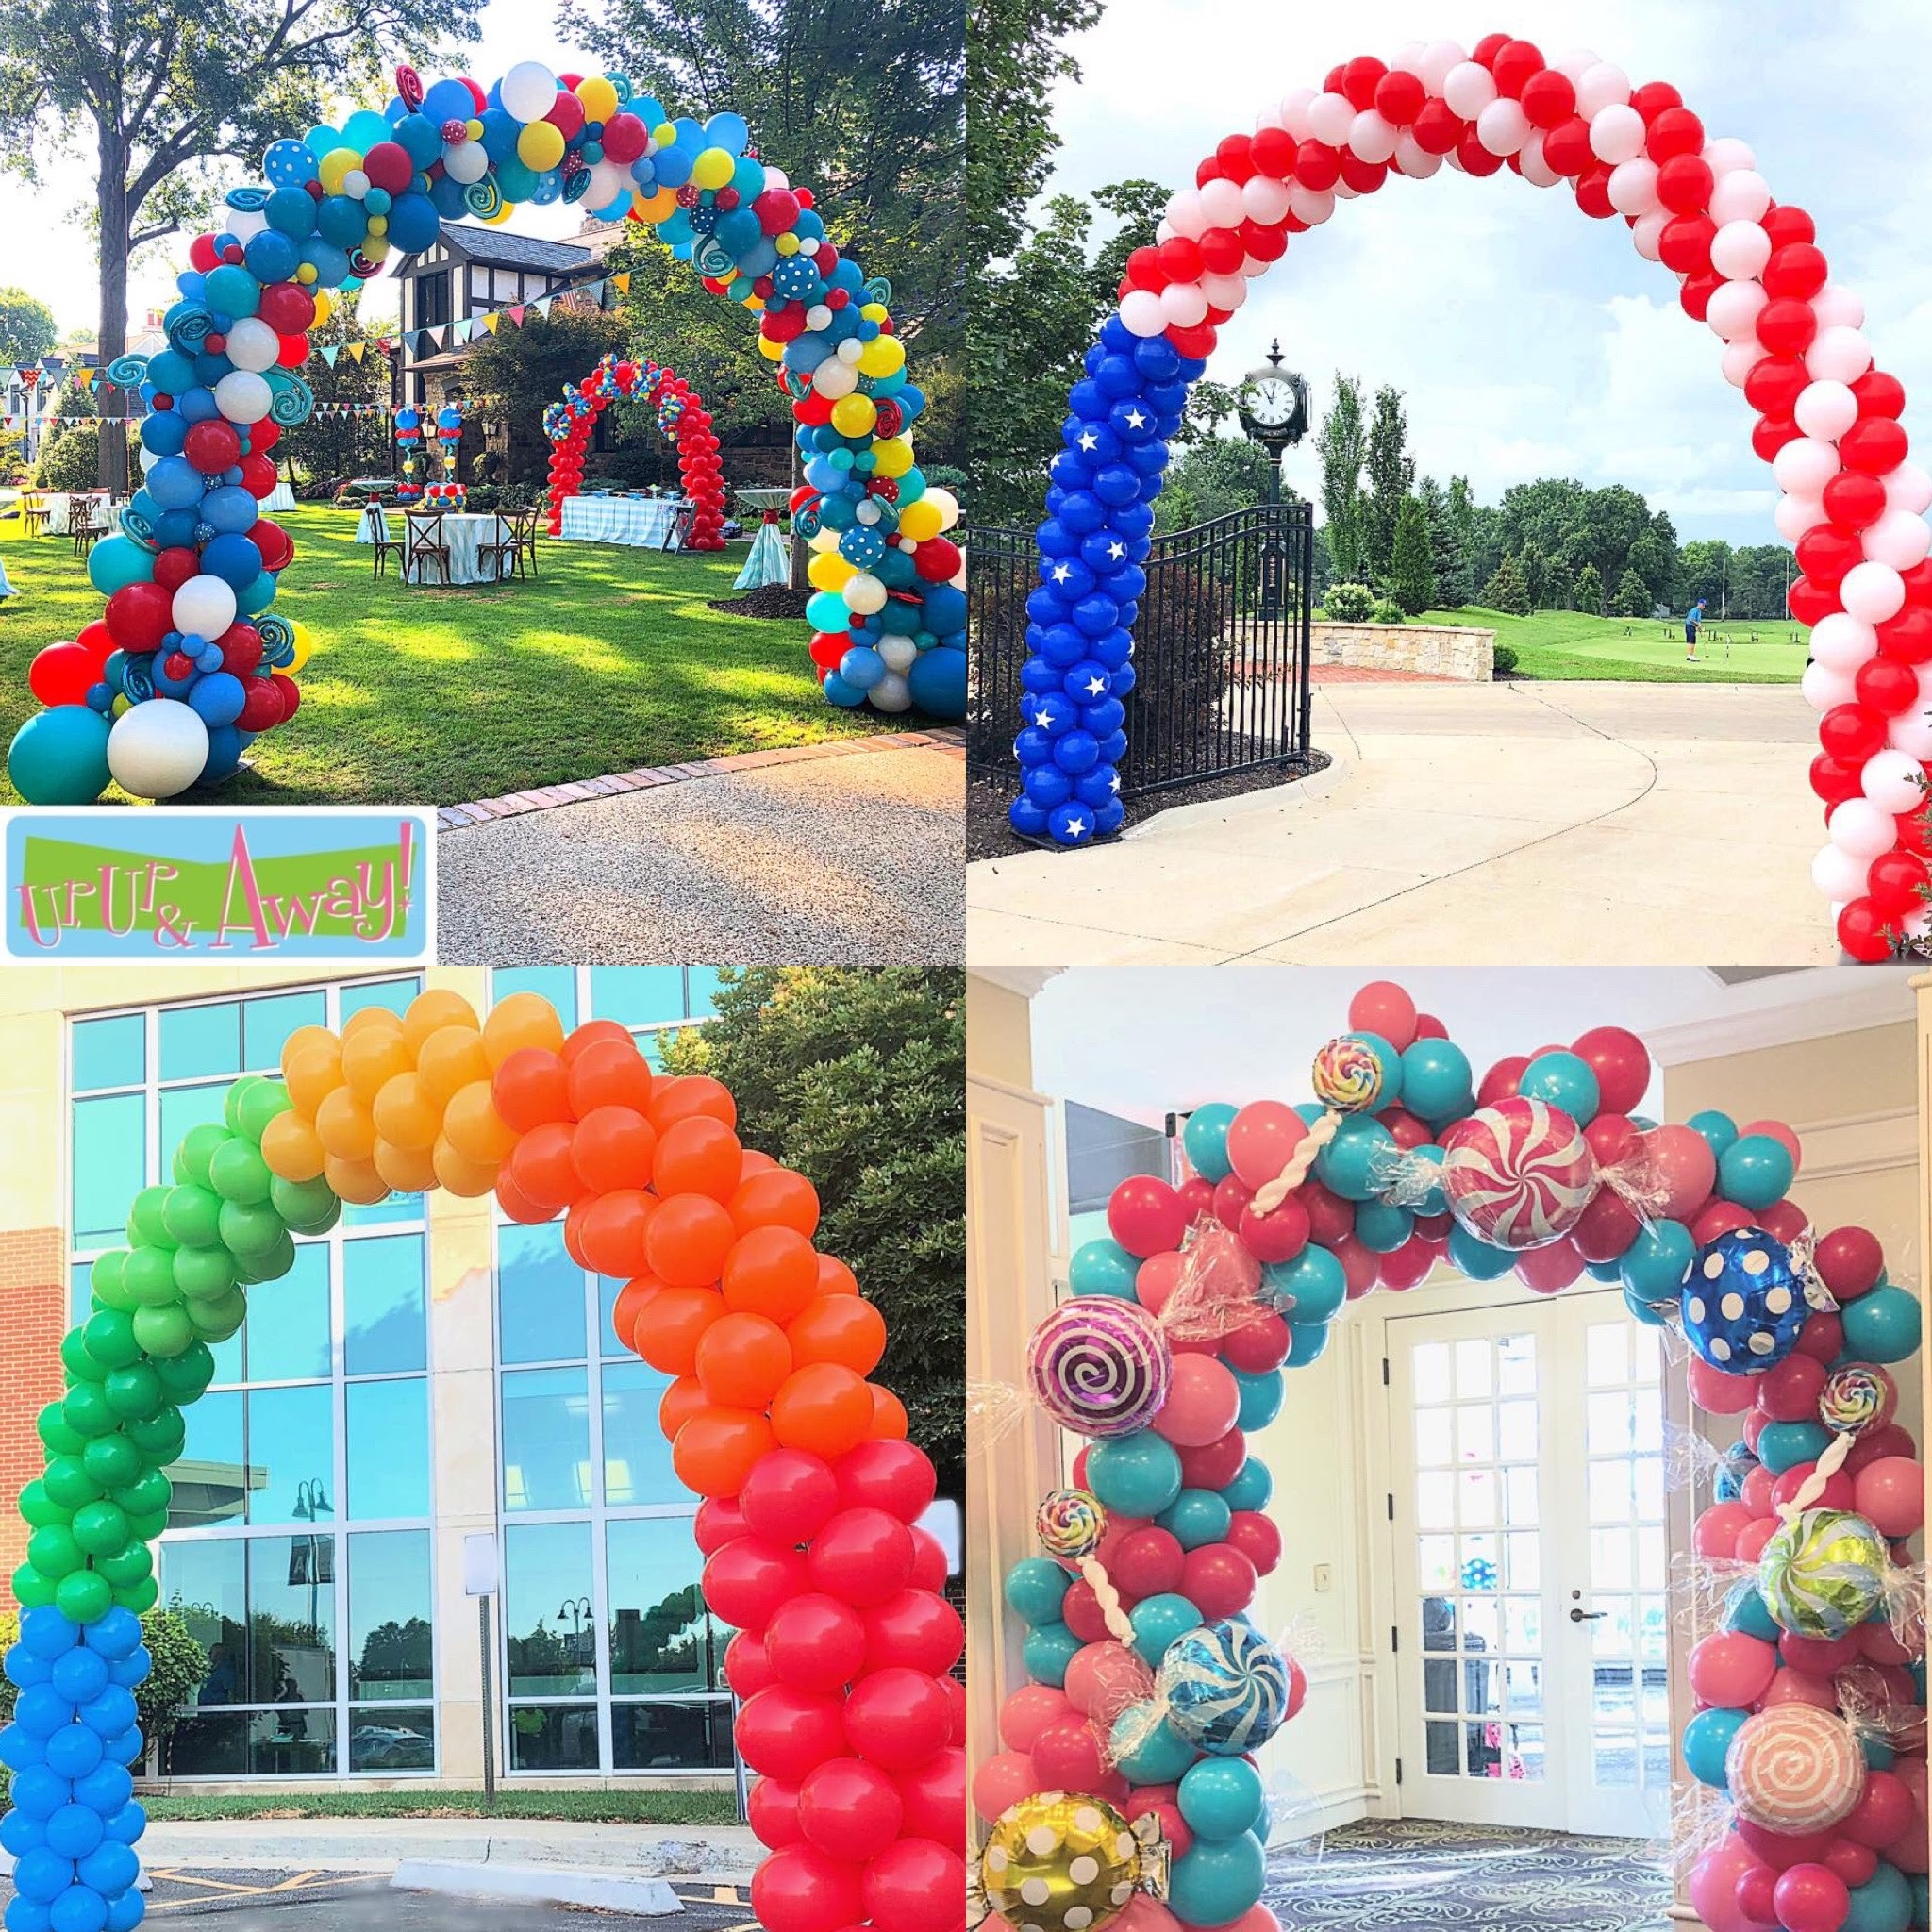 Up, Up & Away! Balloon Arches